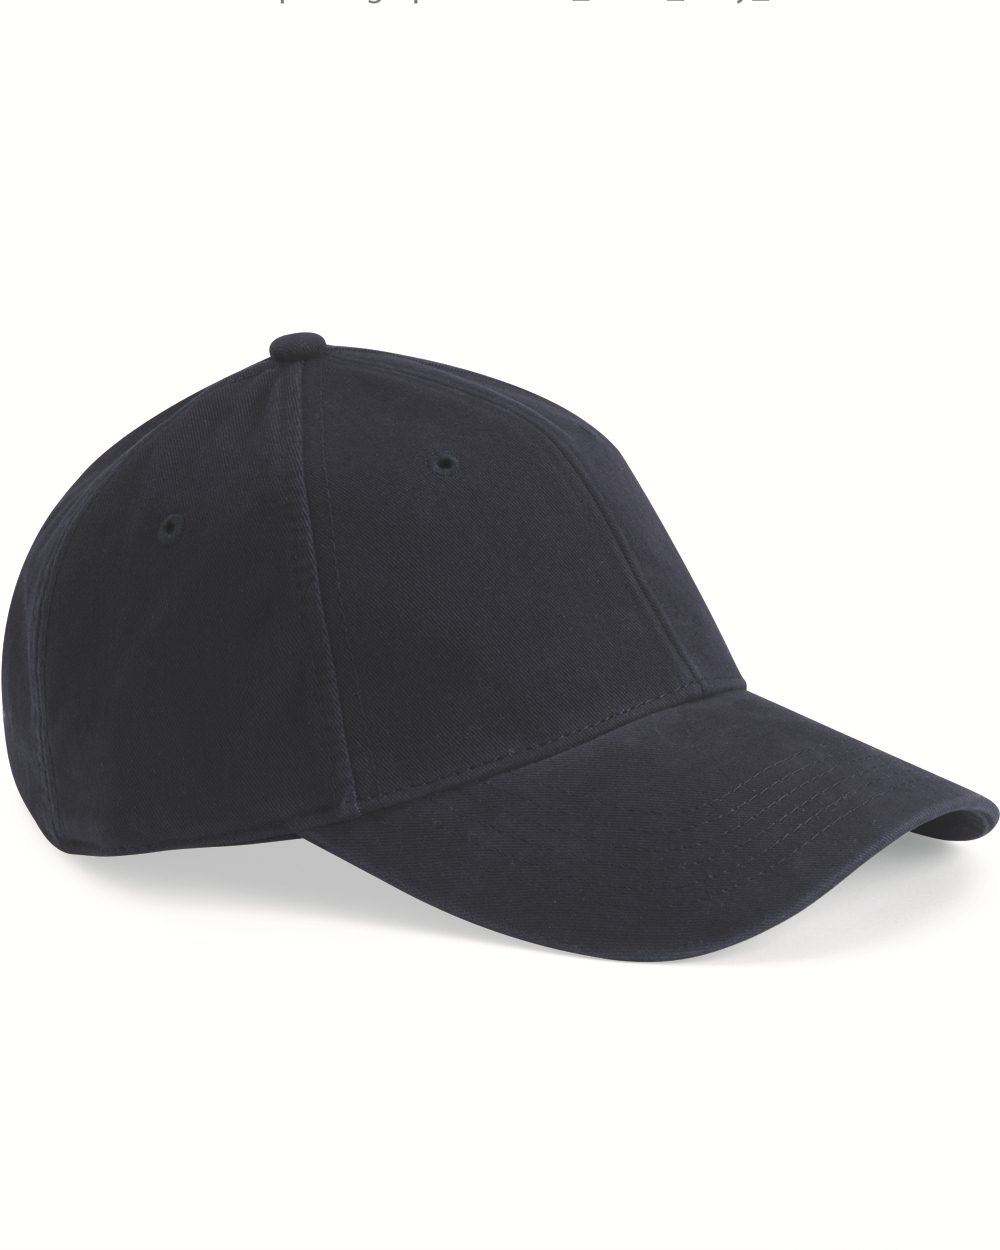 "Sportsman Cap - AH30 ""The Classic"" Structured Cap"